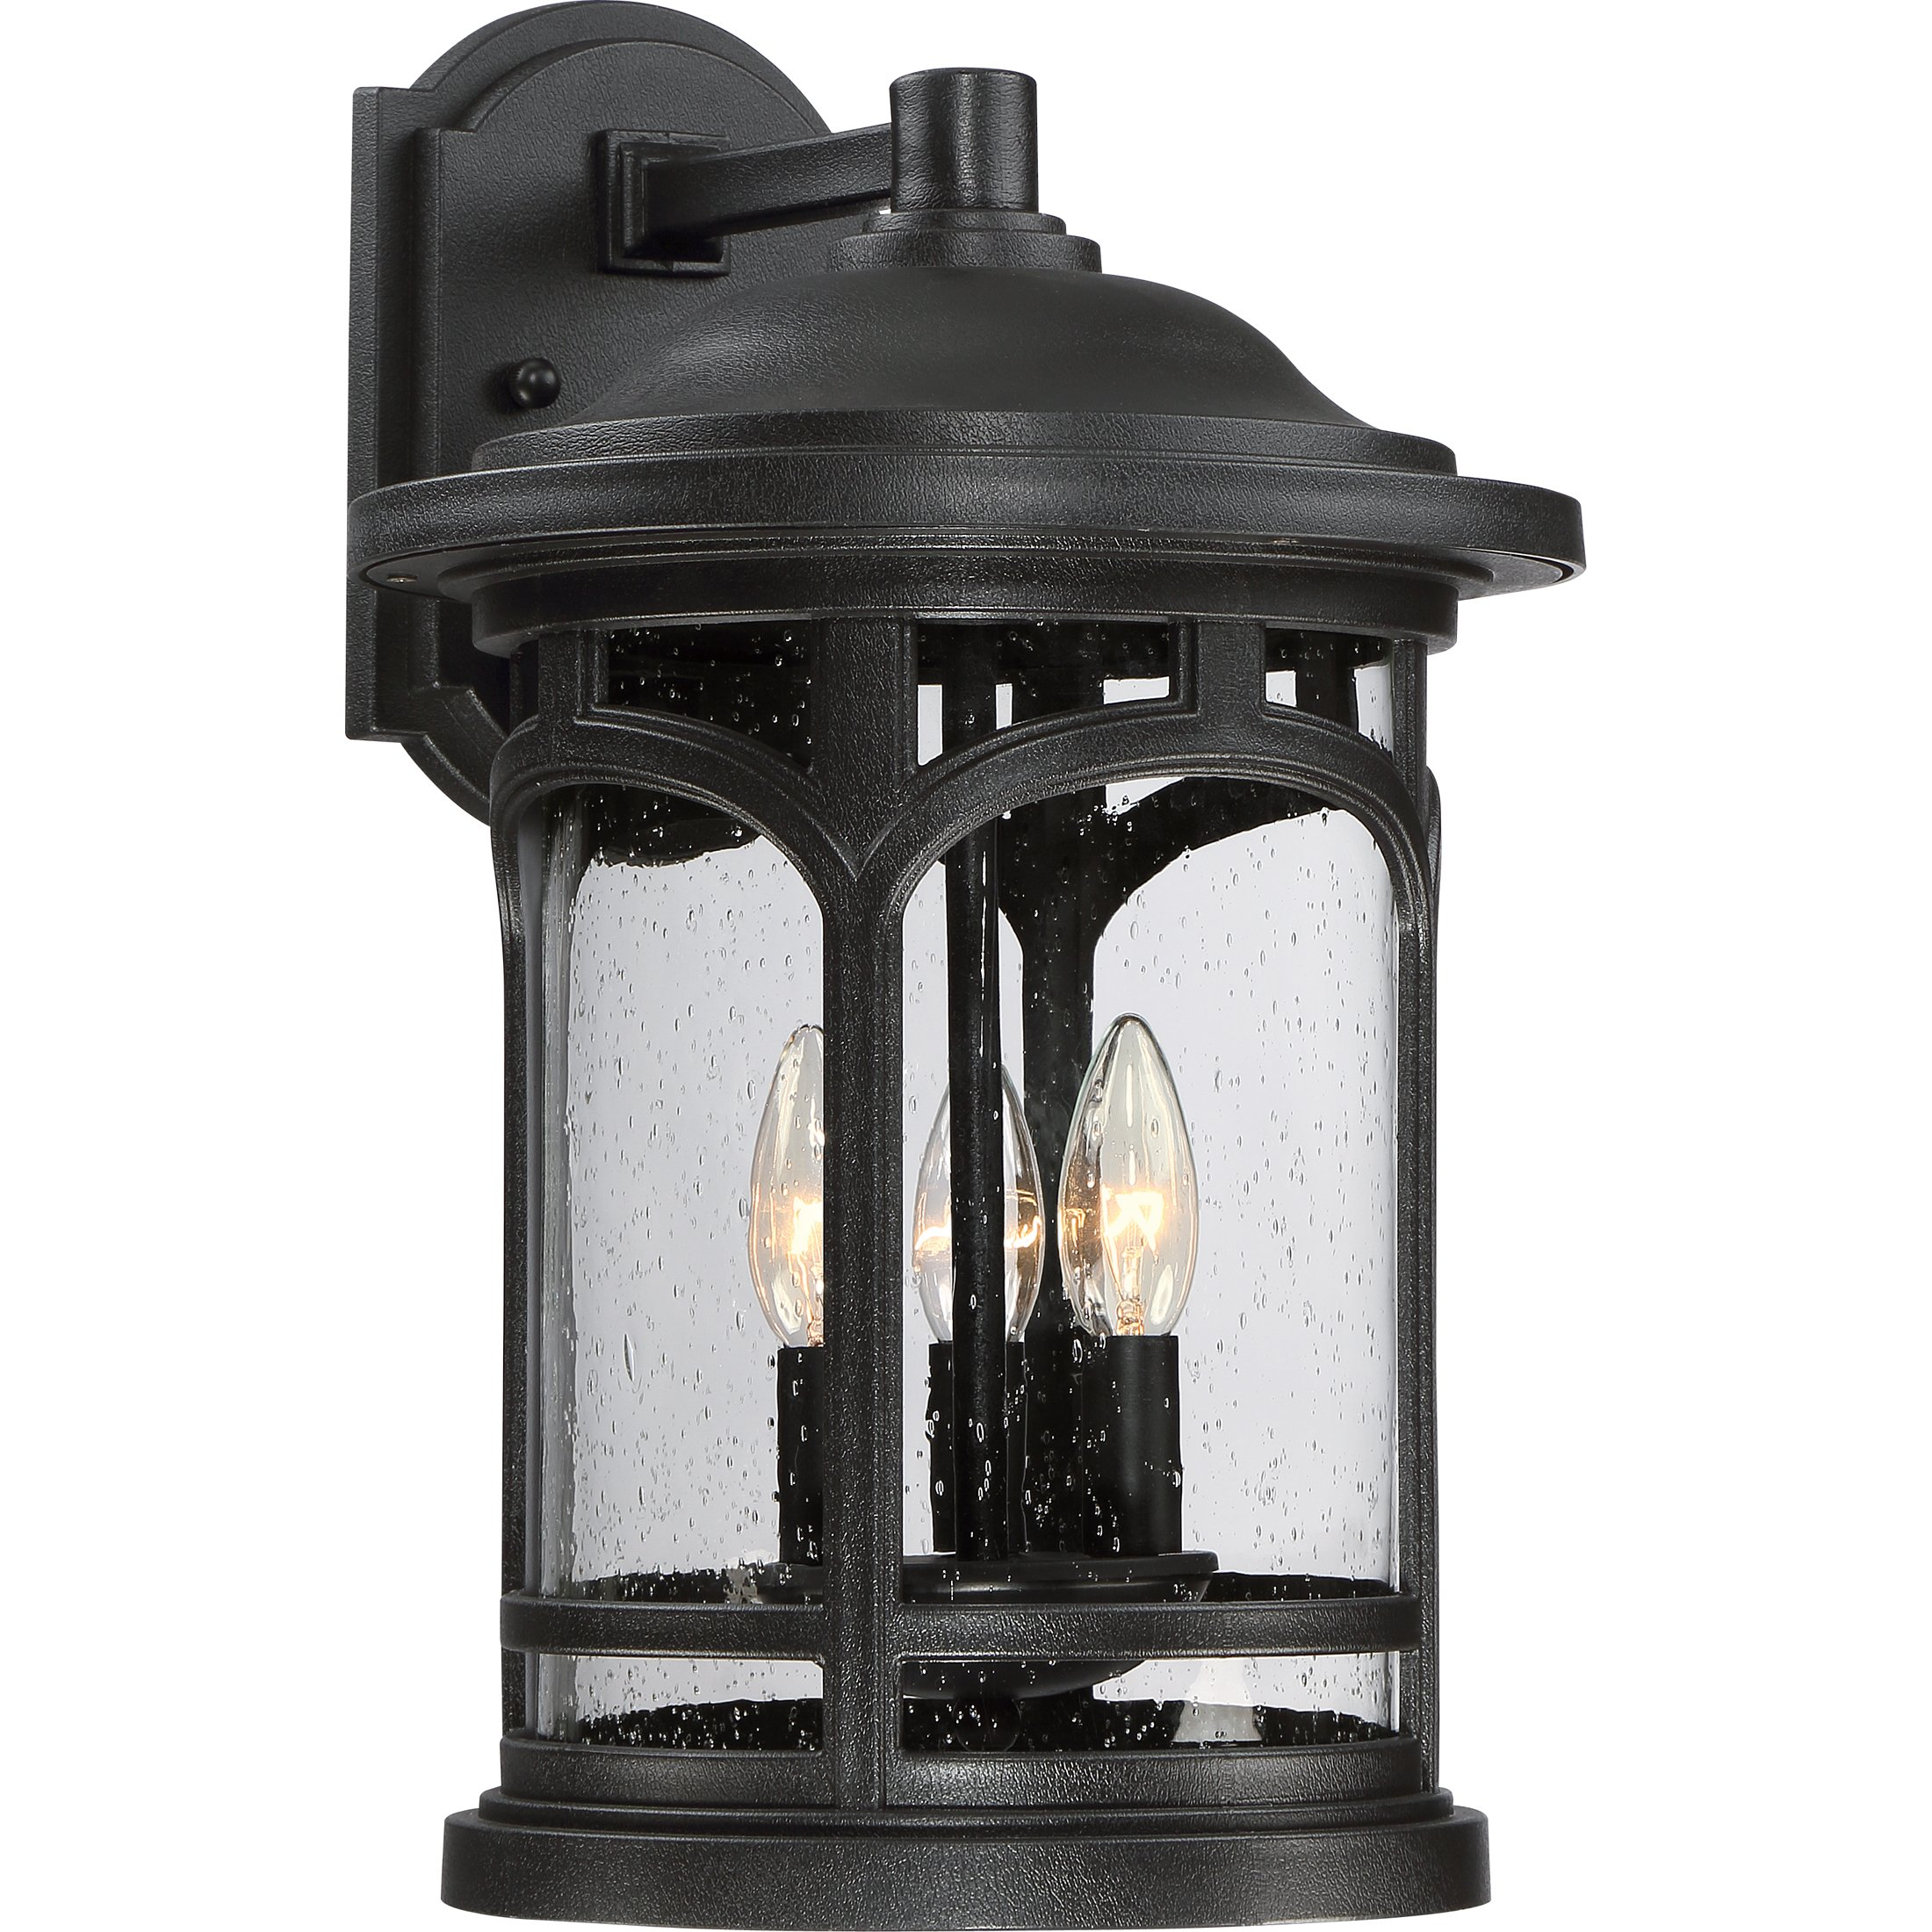 MBH8411K Three Light Wall Marblehead Outdoor Lantern in Mystic Black